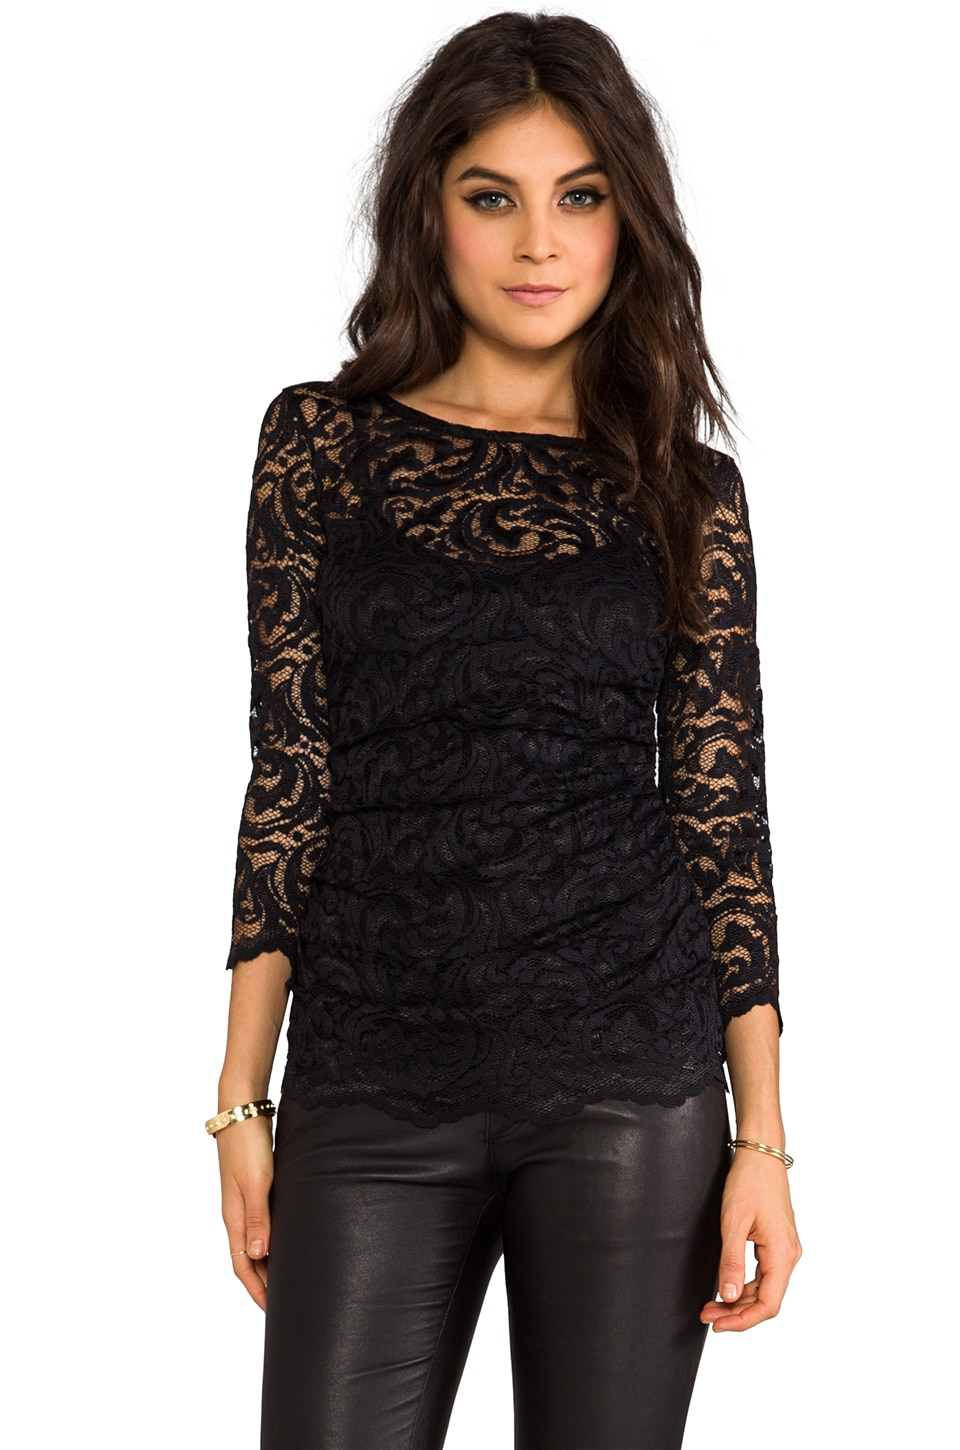 Velvet by Graham & Spencer Remly Stretch Lace Top in Black